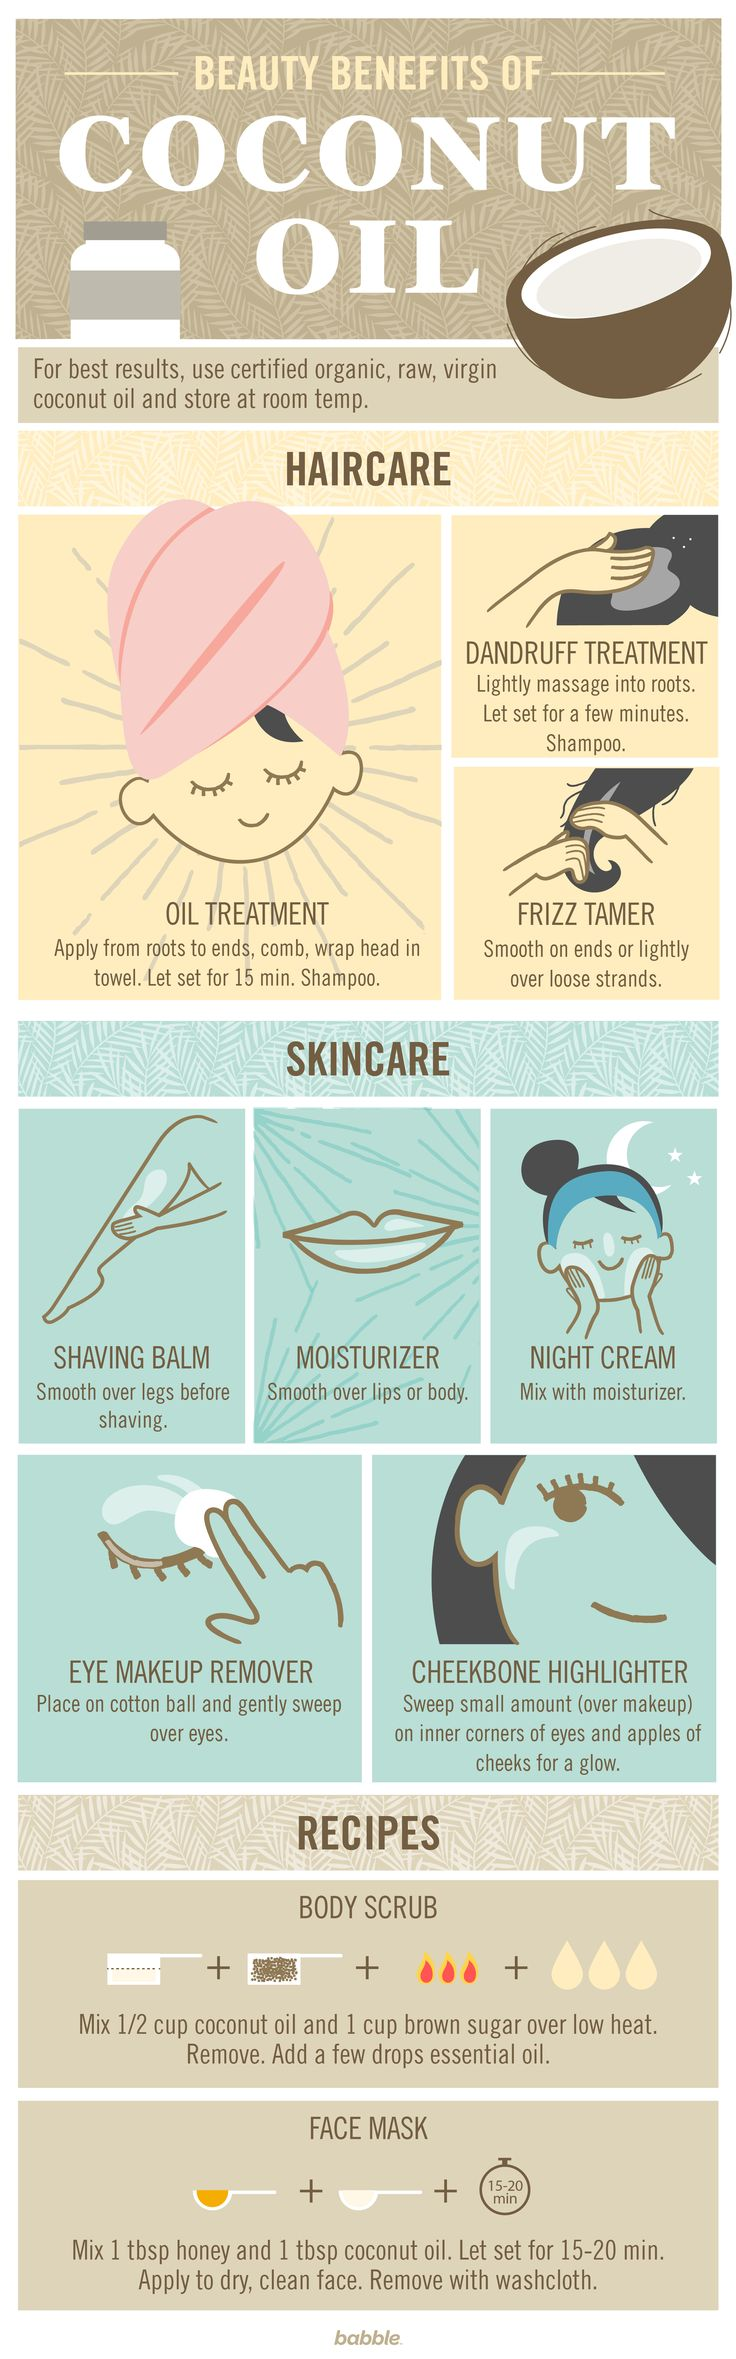 Coconut oil is everywhere right now. You don't know whether to eat it, drink it, or bathe in it. Try these great beauty uses for coconut oil tonight, from skincare to haircare to DIY beauty products.